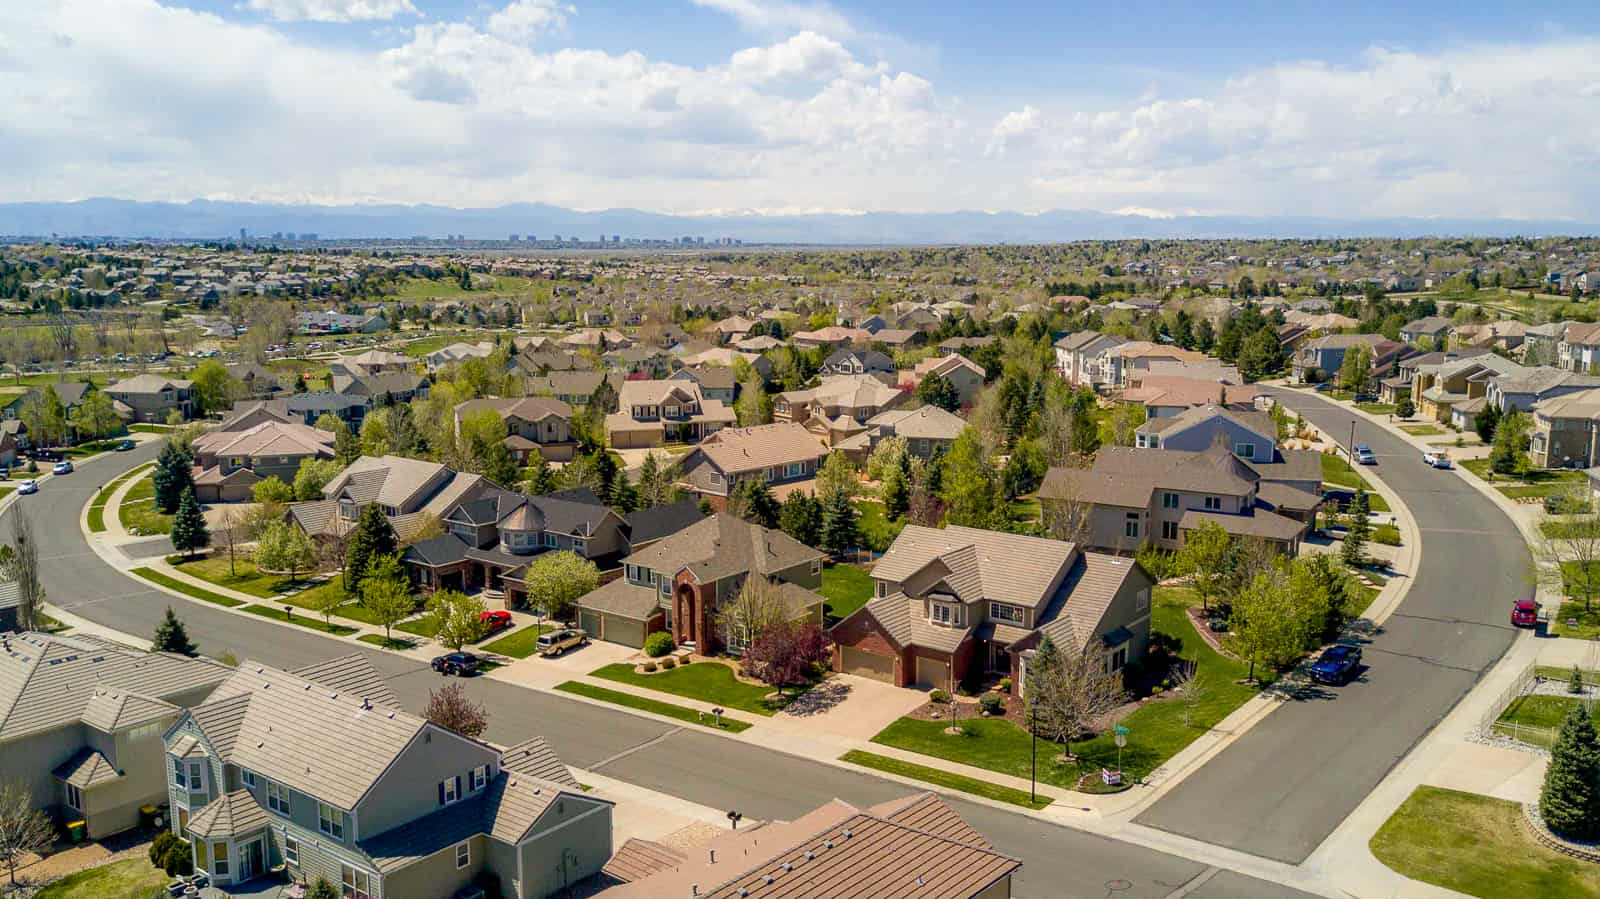 drone photo of residential houses in neighborhood in Aurora, CO